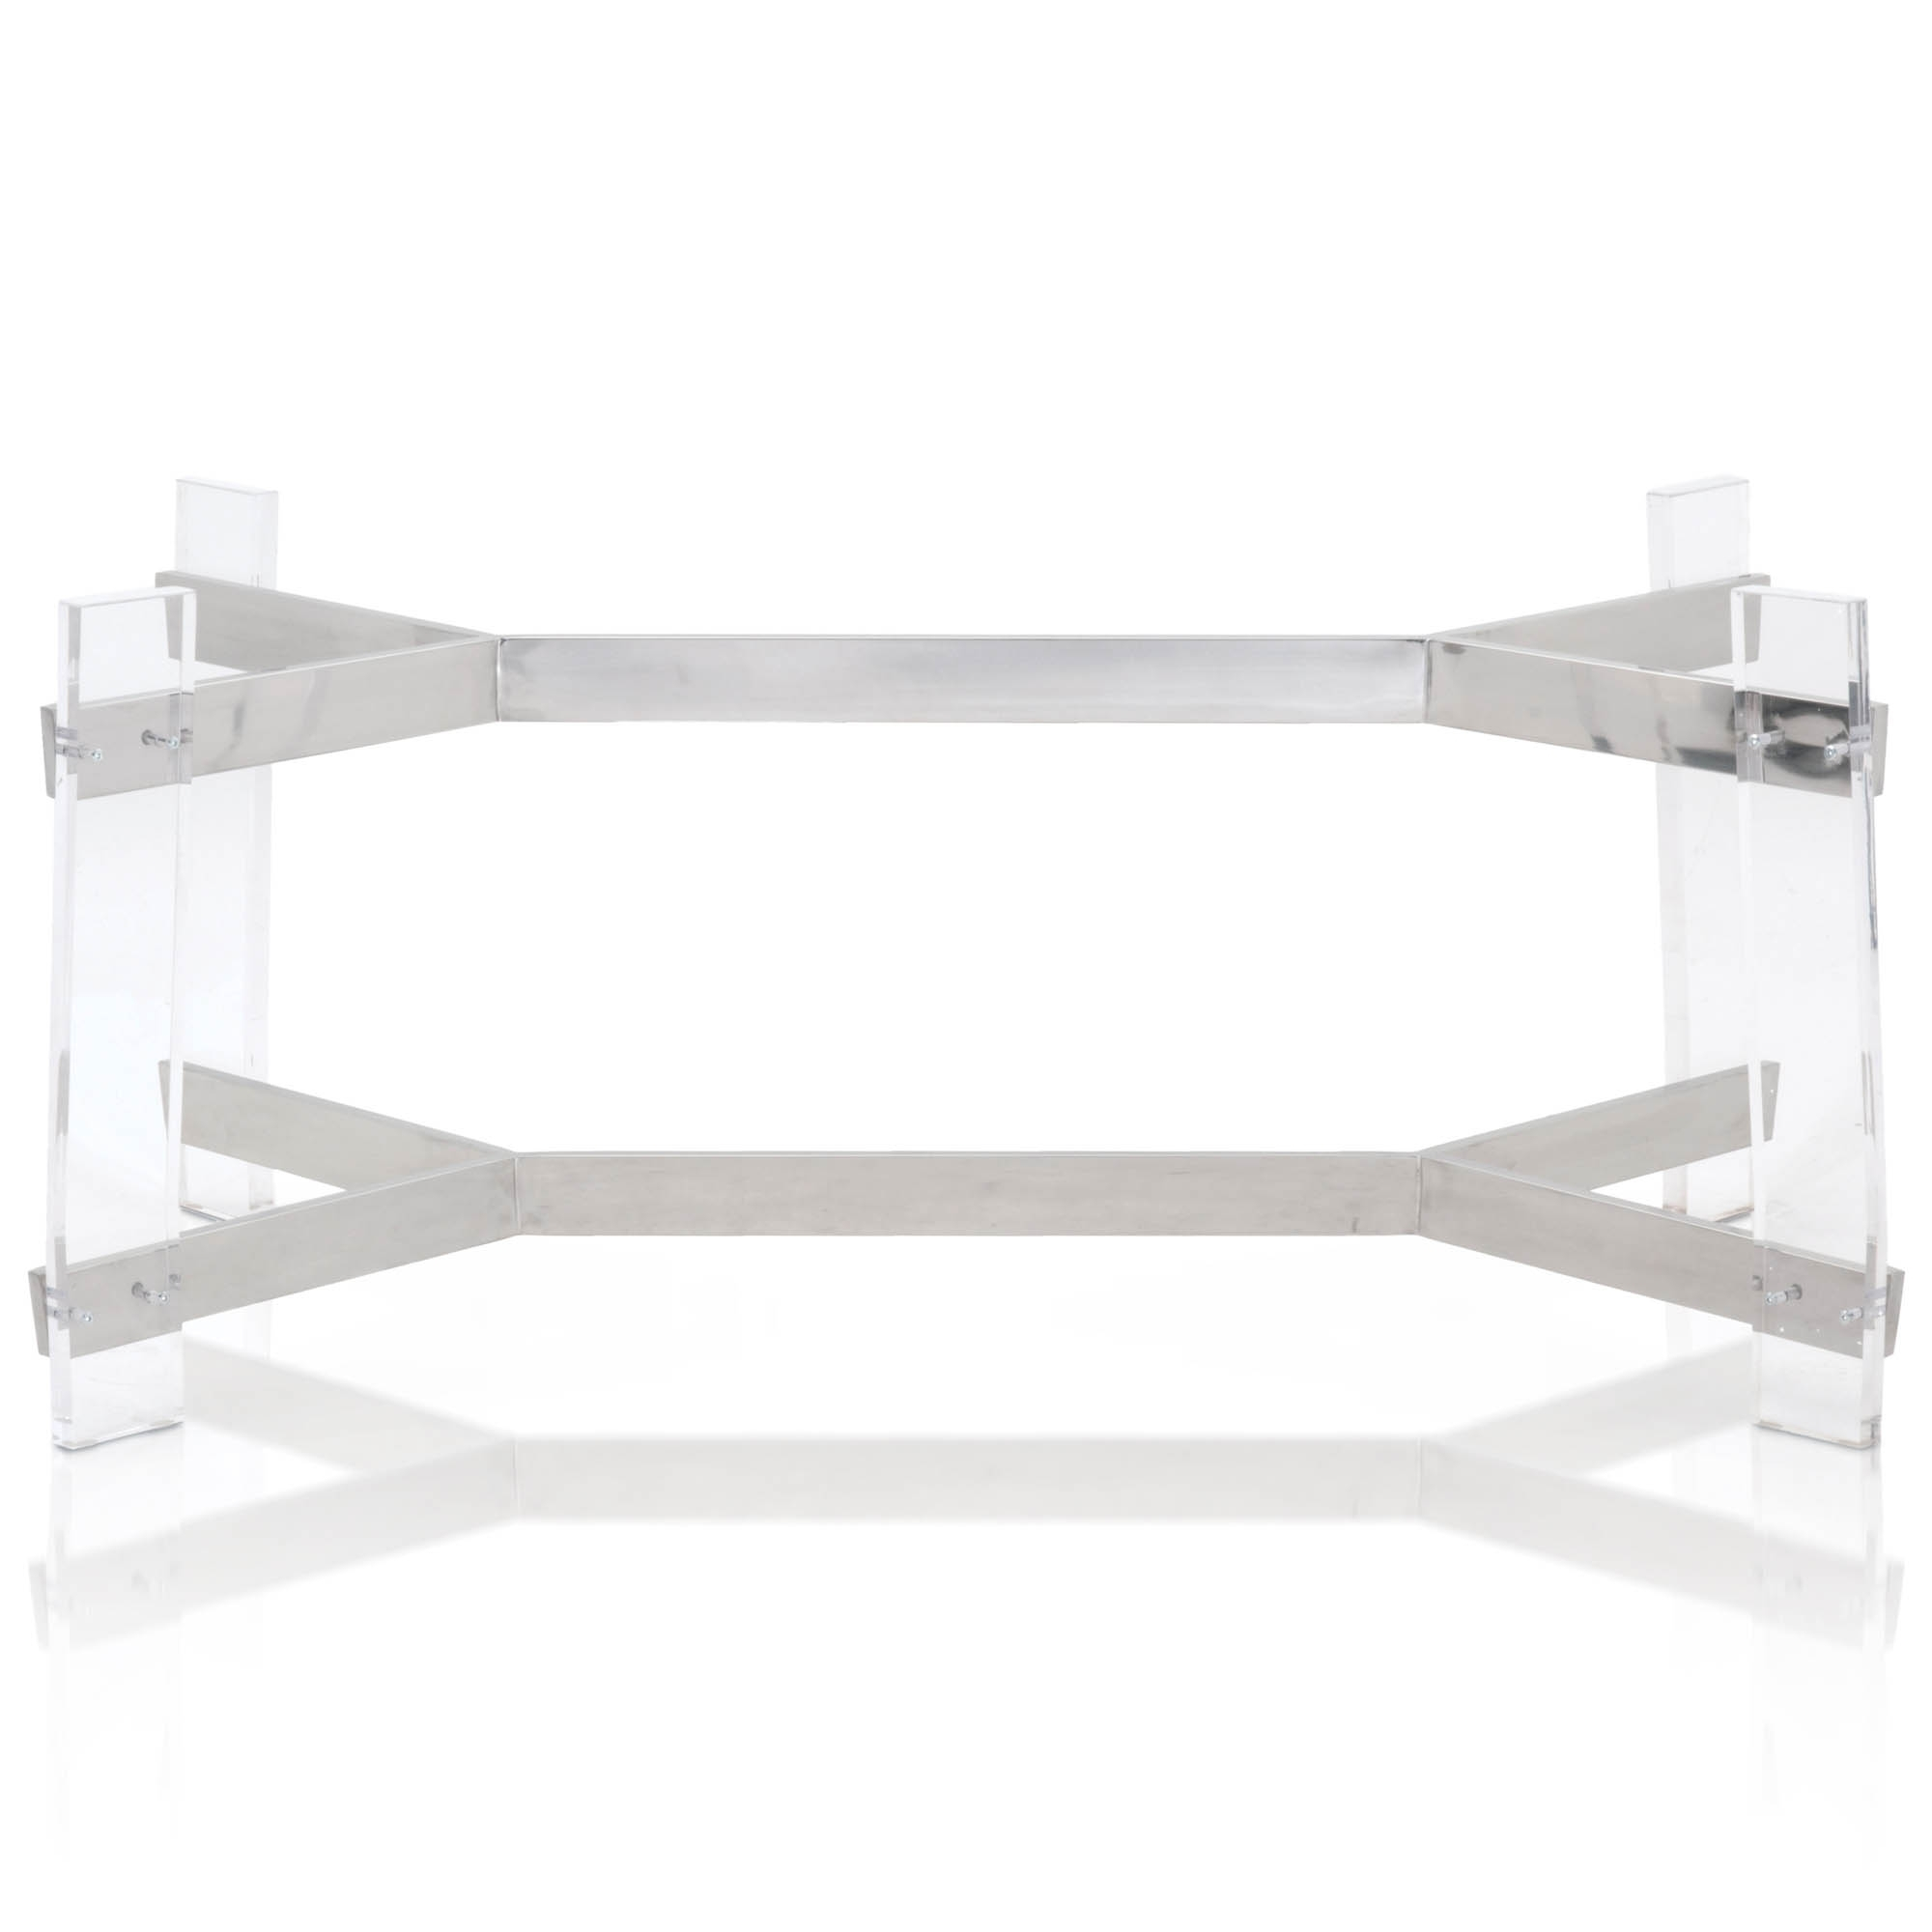 Current Nora Rectangle Dining Table Base For Nora Dining Tables (View 13 of 25)